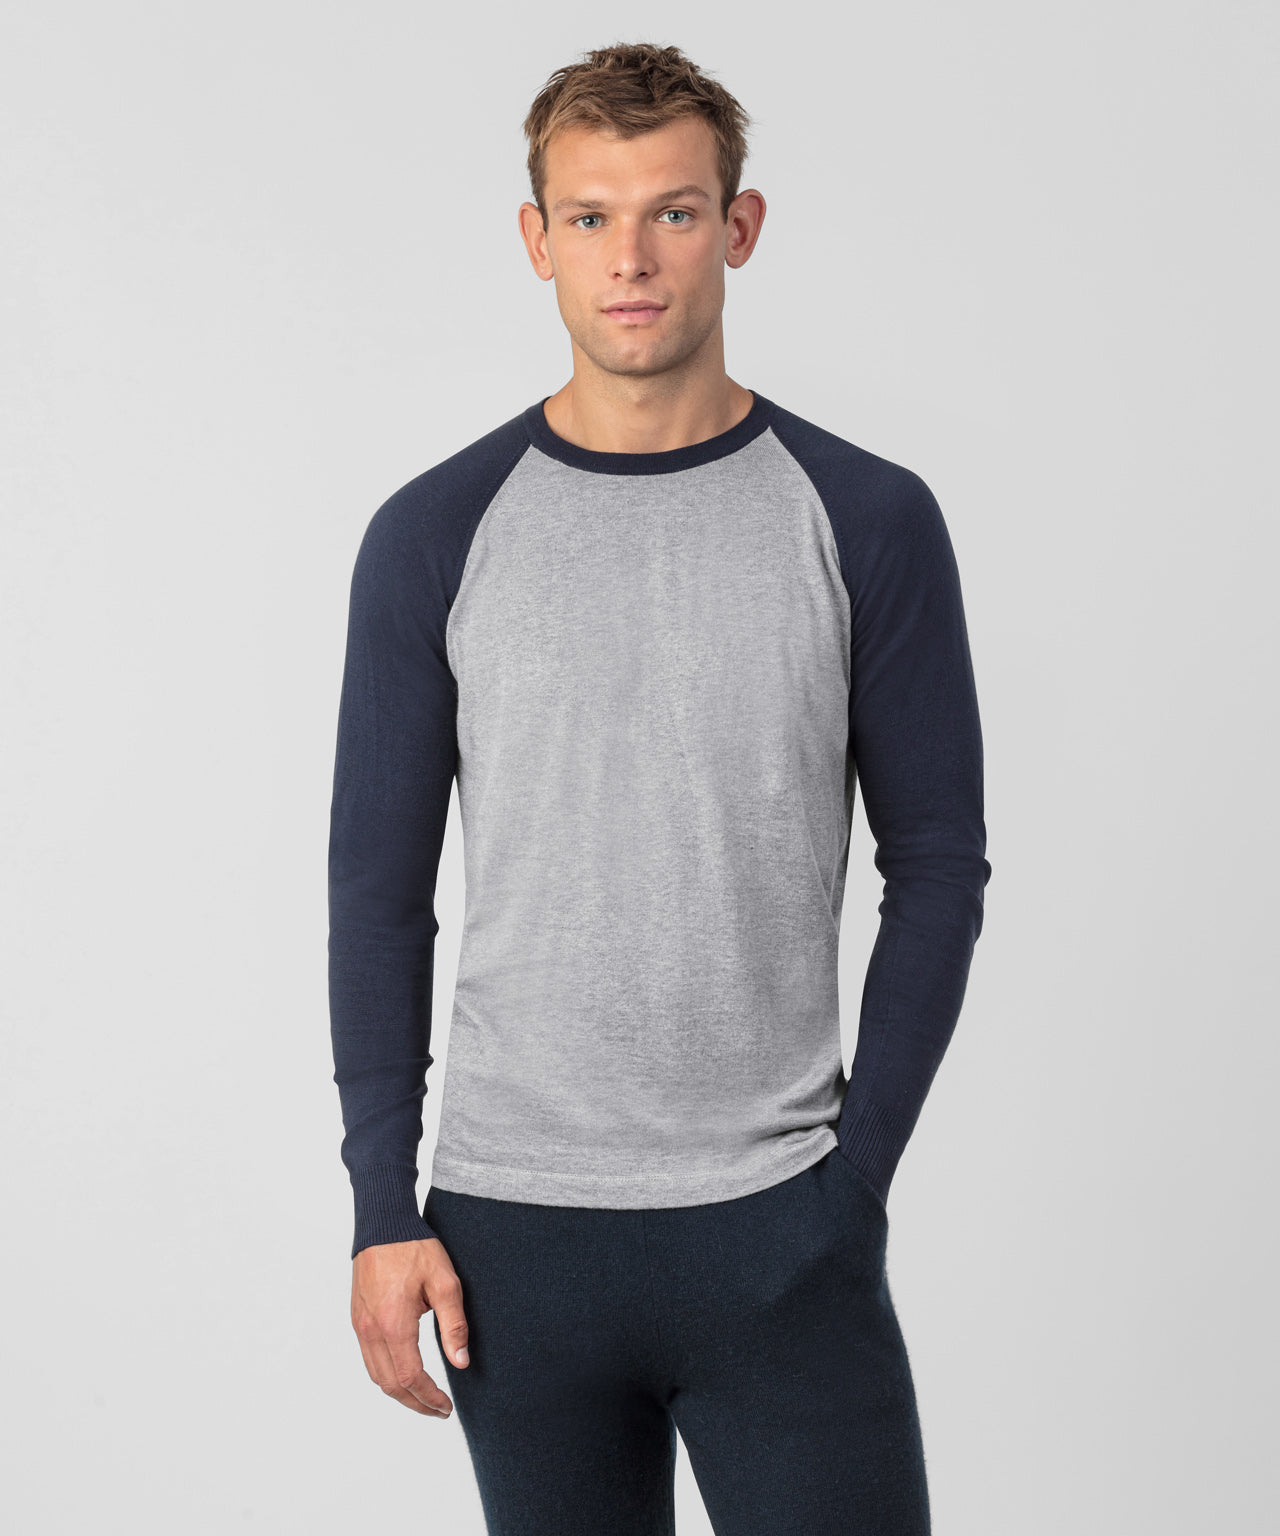 Cotton Cashmere Baseball Sweater - navy/grey melange